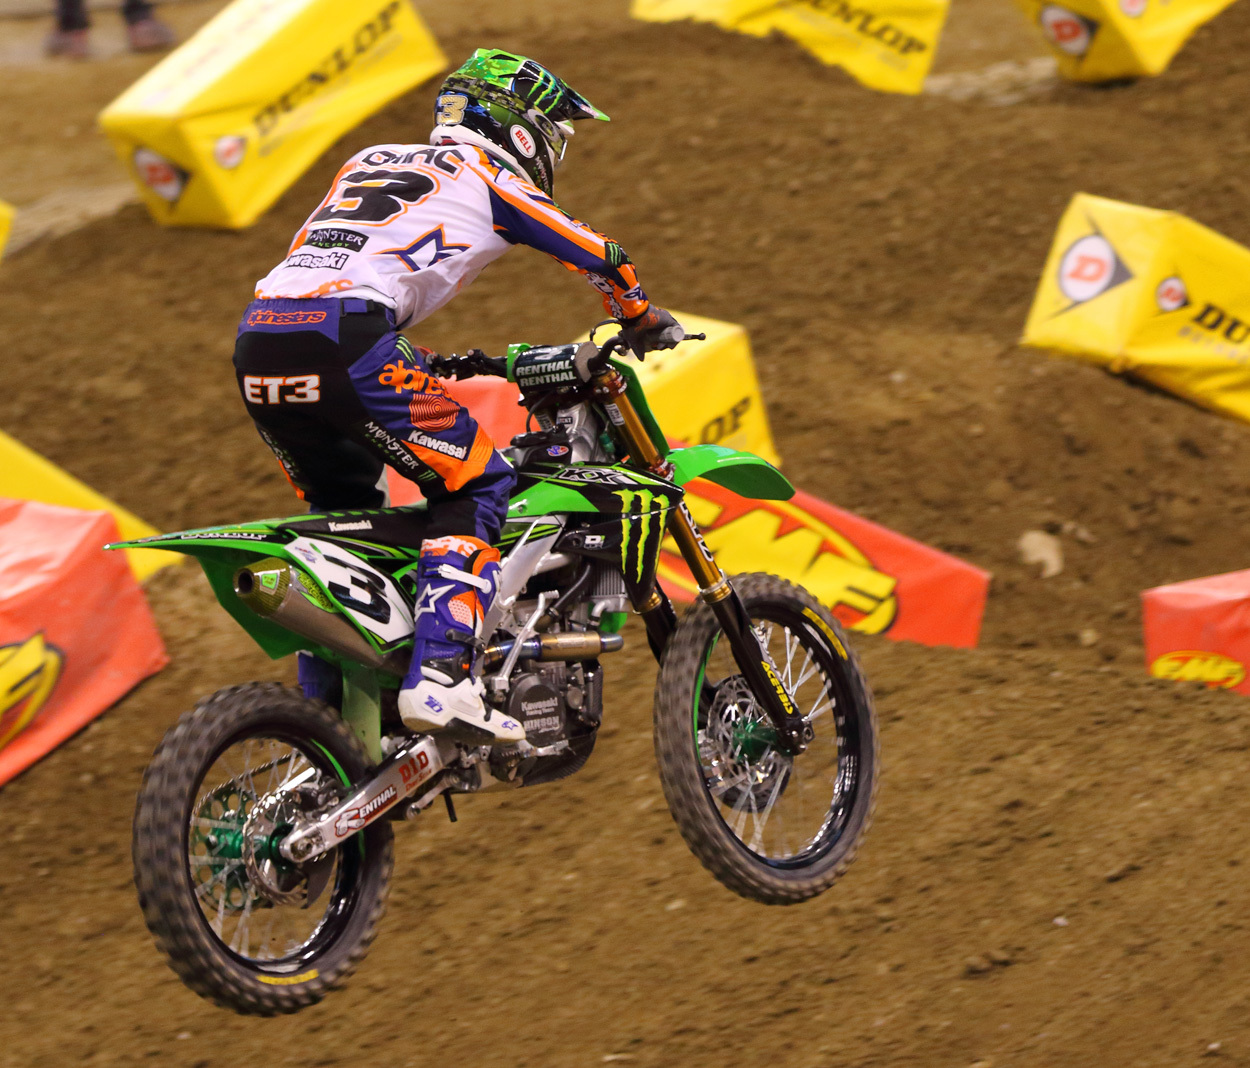 2017 Monster Energy Supercross Indianapolice_d0091546_08413365.jpg